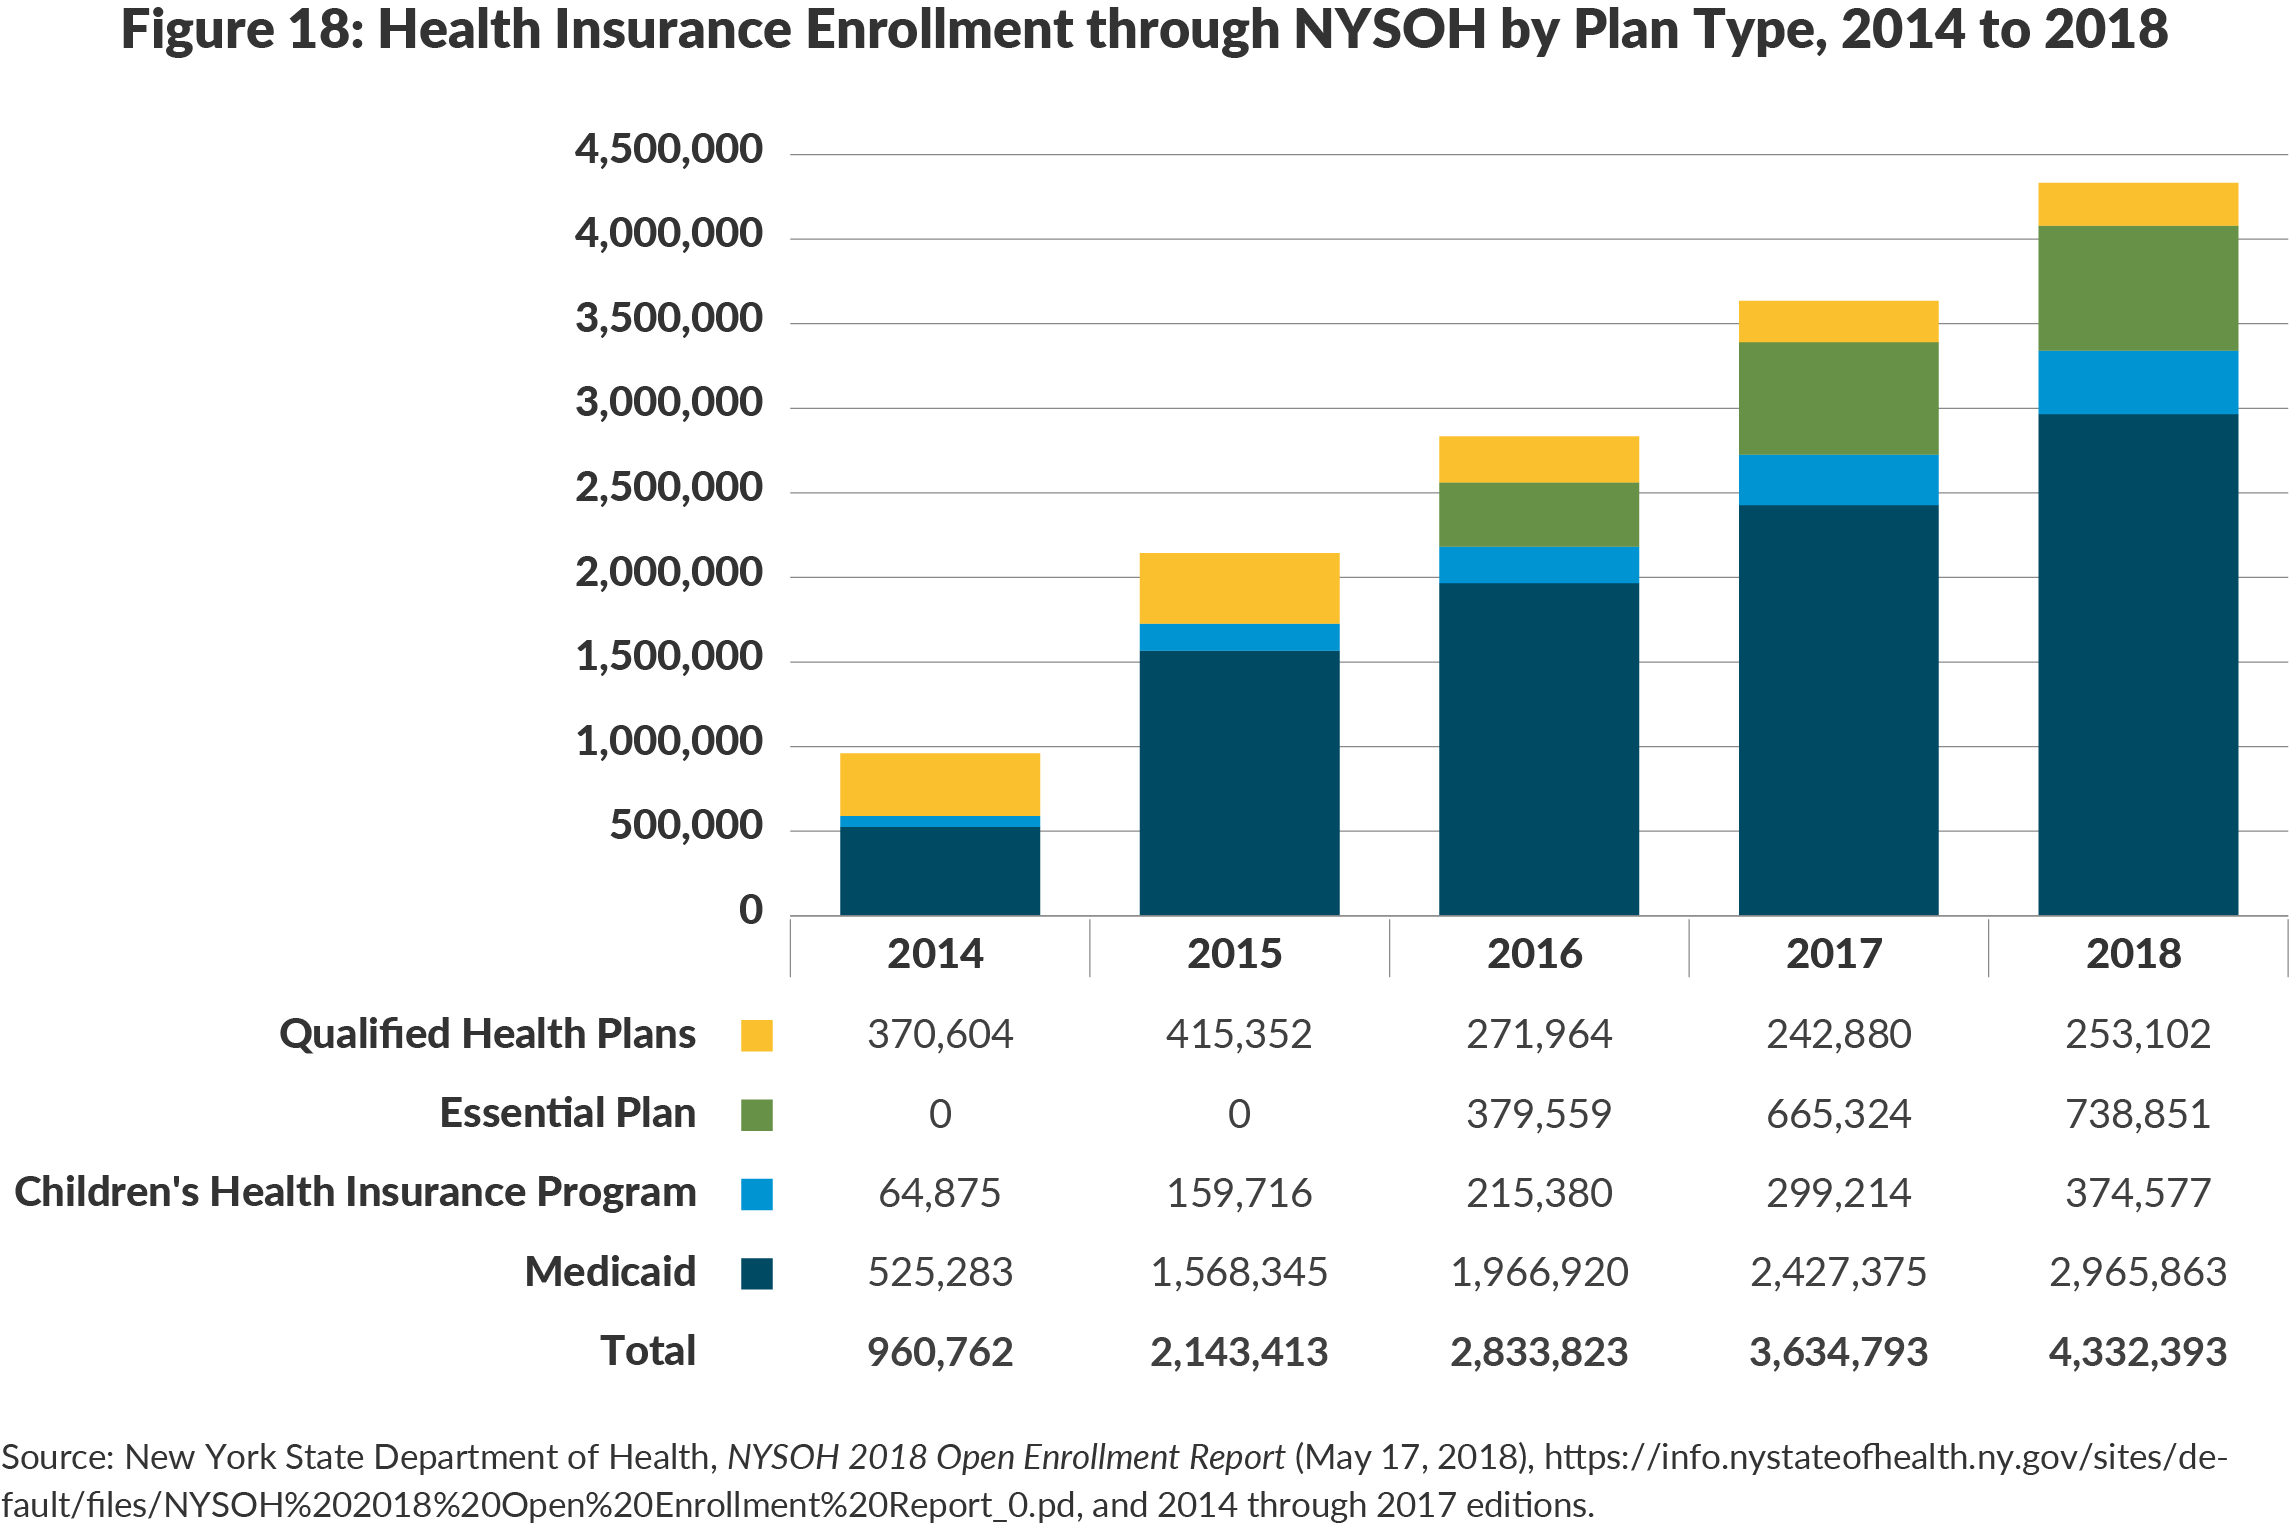 Figure 18: Health Insurance Enrollment through NYSOH by Plan Type, 2014 to 2018